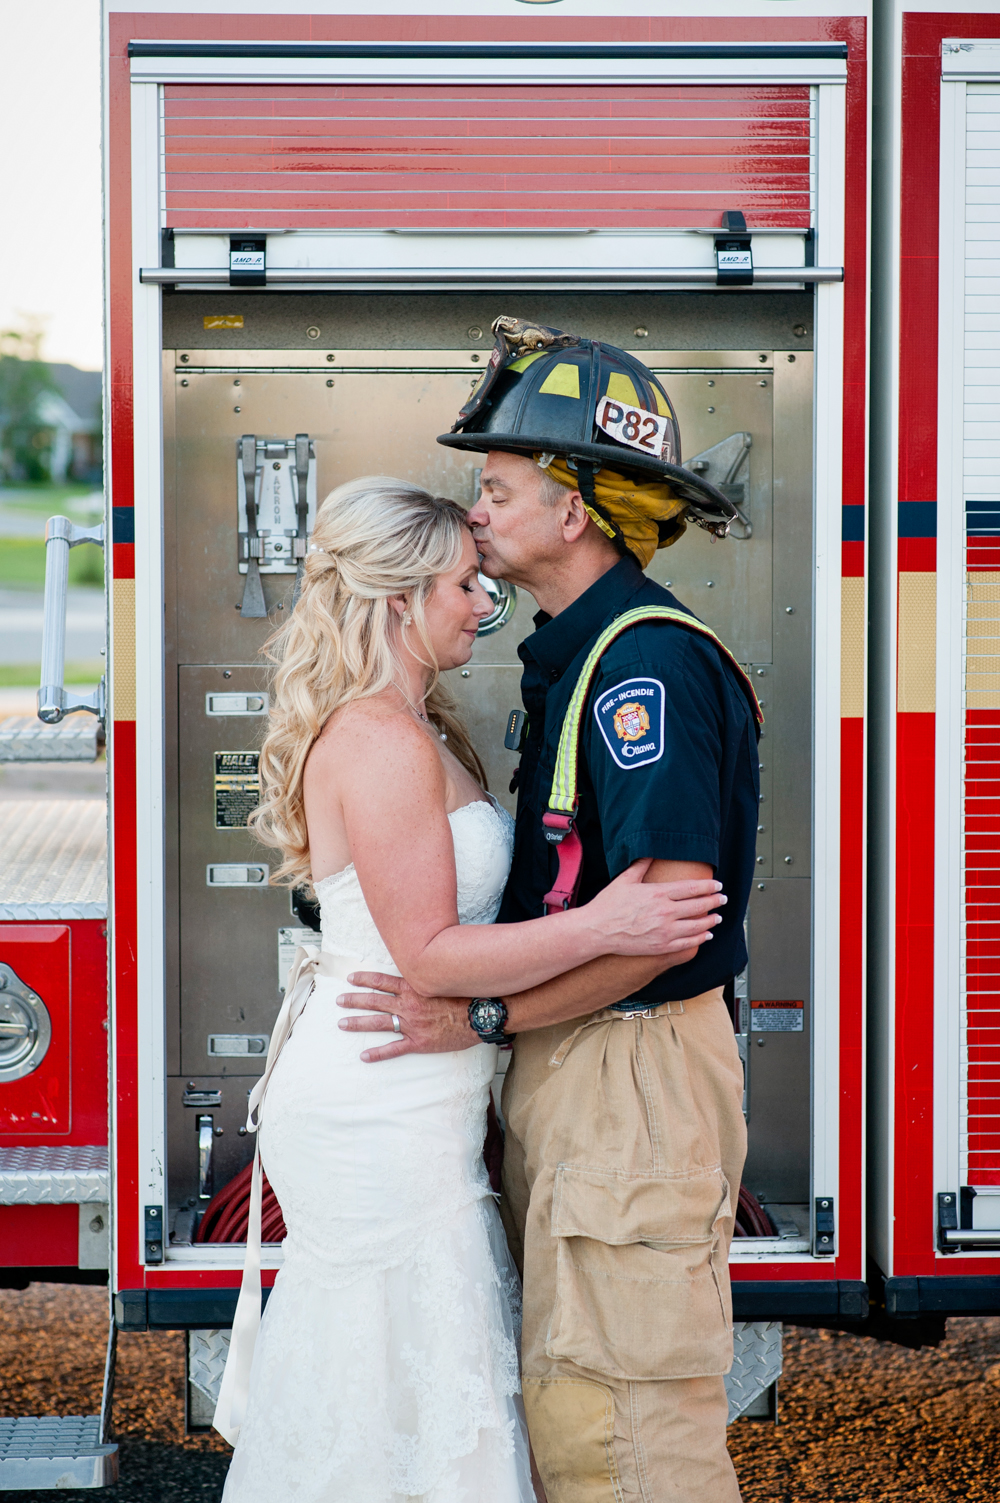 black-lamb-photography-ottawa-wedding-photographer-fire-fighter-themed-wedding-shoot-45